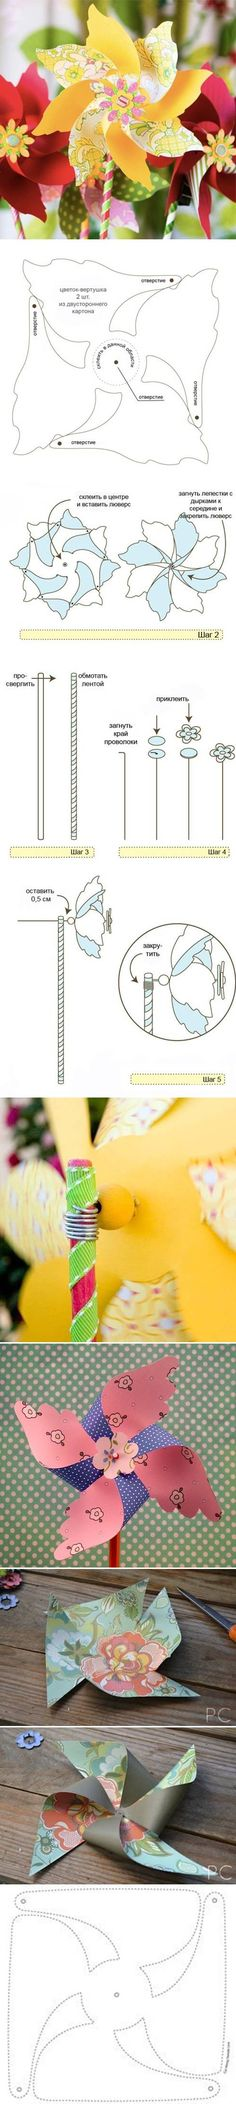 Diy Paper Pinwheels Templates Ideas For 2019 Origami Paper, Diy Paper, Paper Art, Paper Crafts, Diy Crafts, Windmill Diy, Paper Windmill, Kirigami, Papier Diy